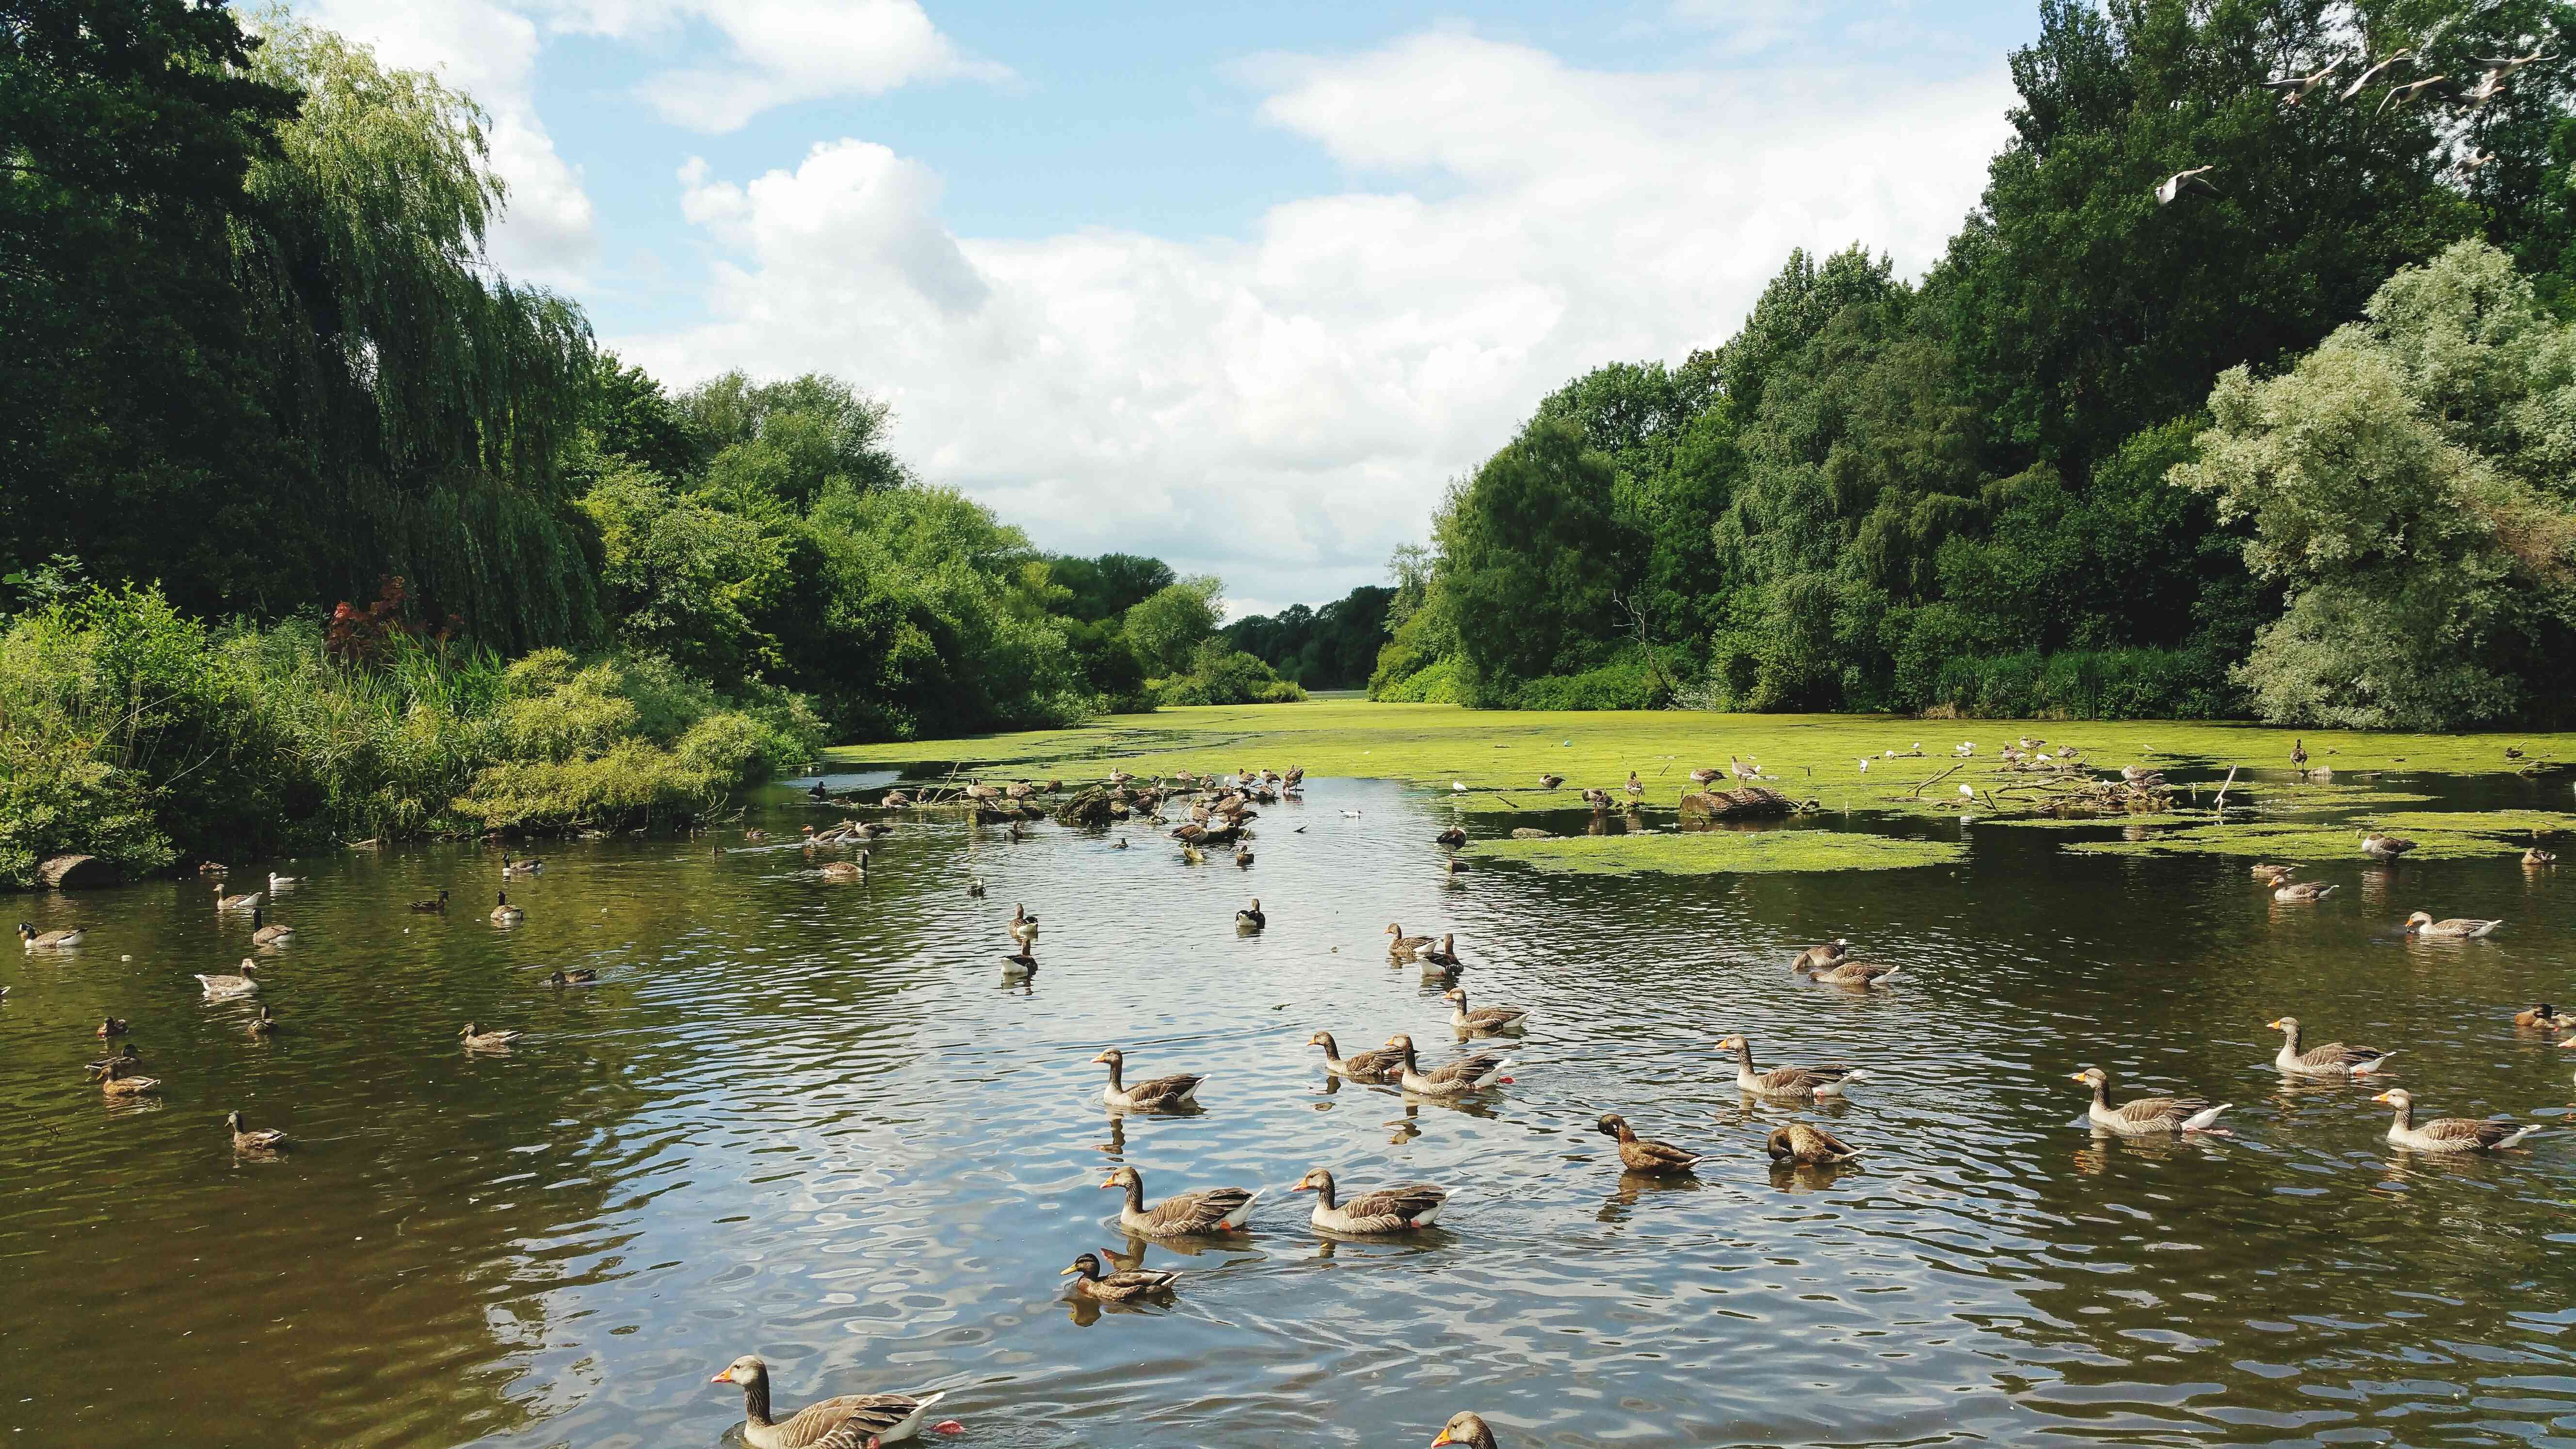 Birds In Pond At Coombe Country Park